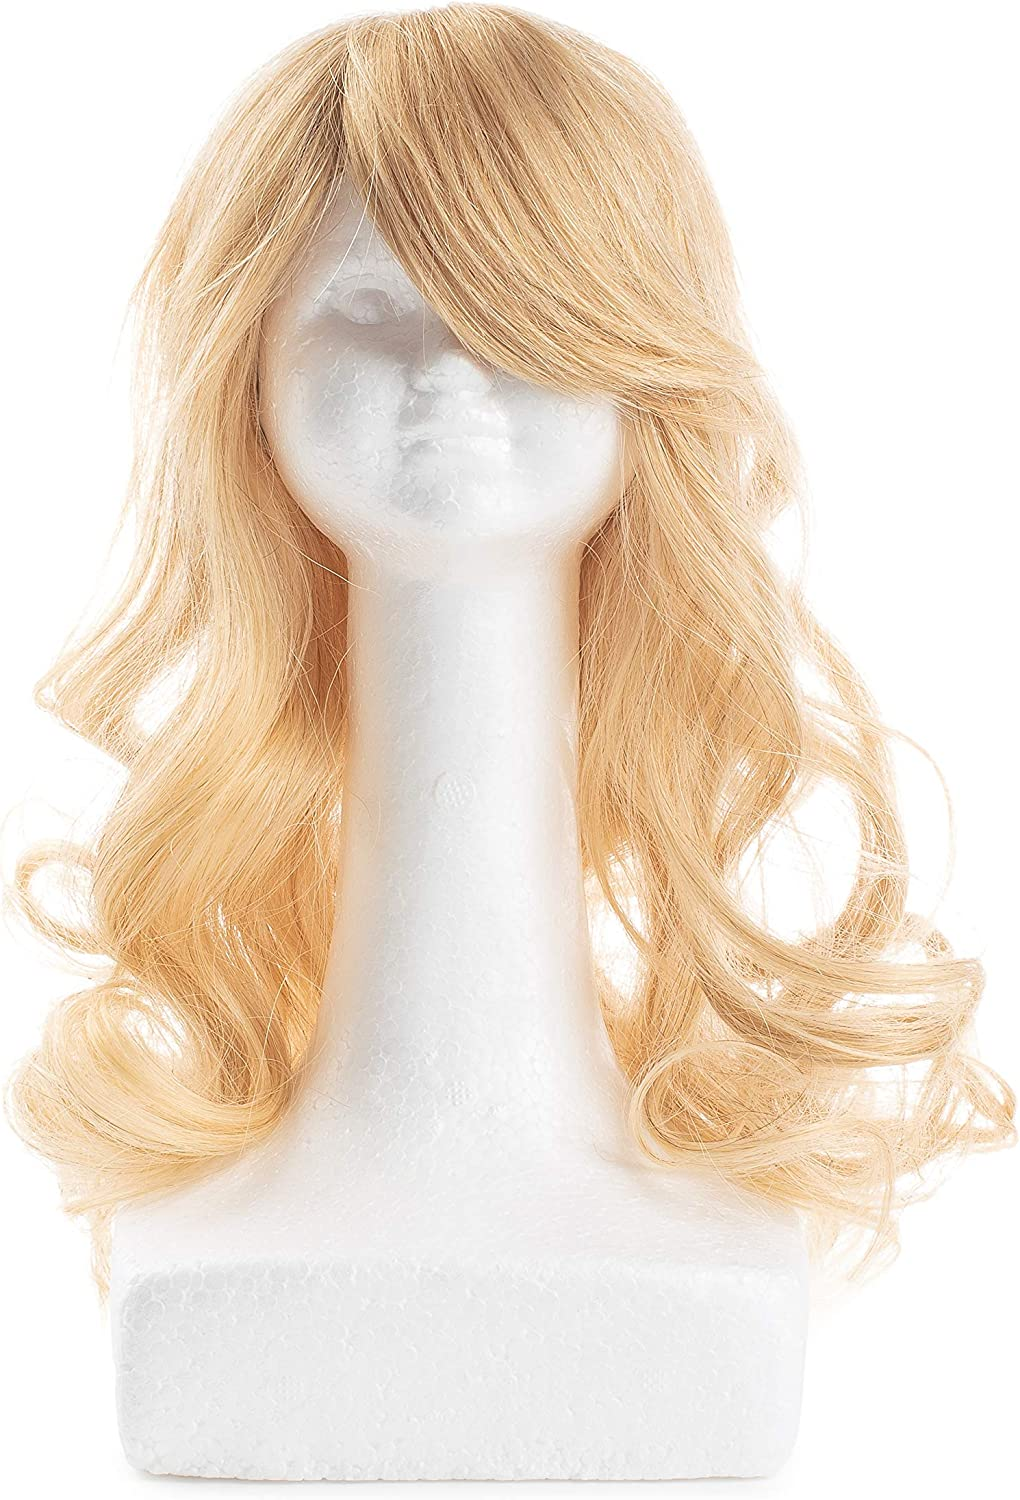 Amazon Com Teeny Dini Human Hair Wig Wash Style Blow Dry Doll S Wigs Just Like Mom Does Blonde Curly Wig Toys Games